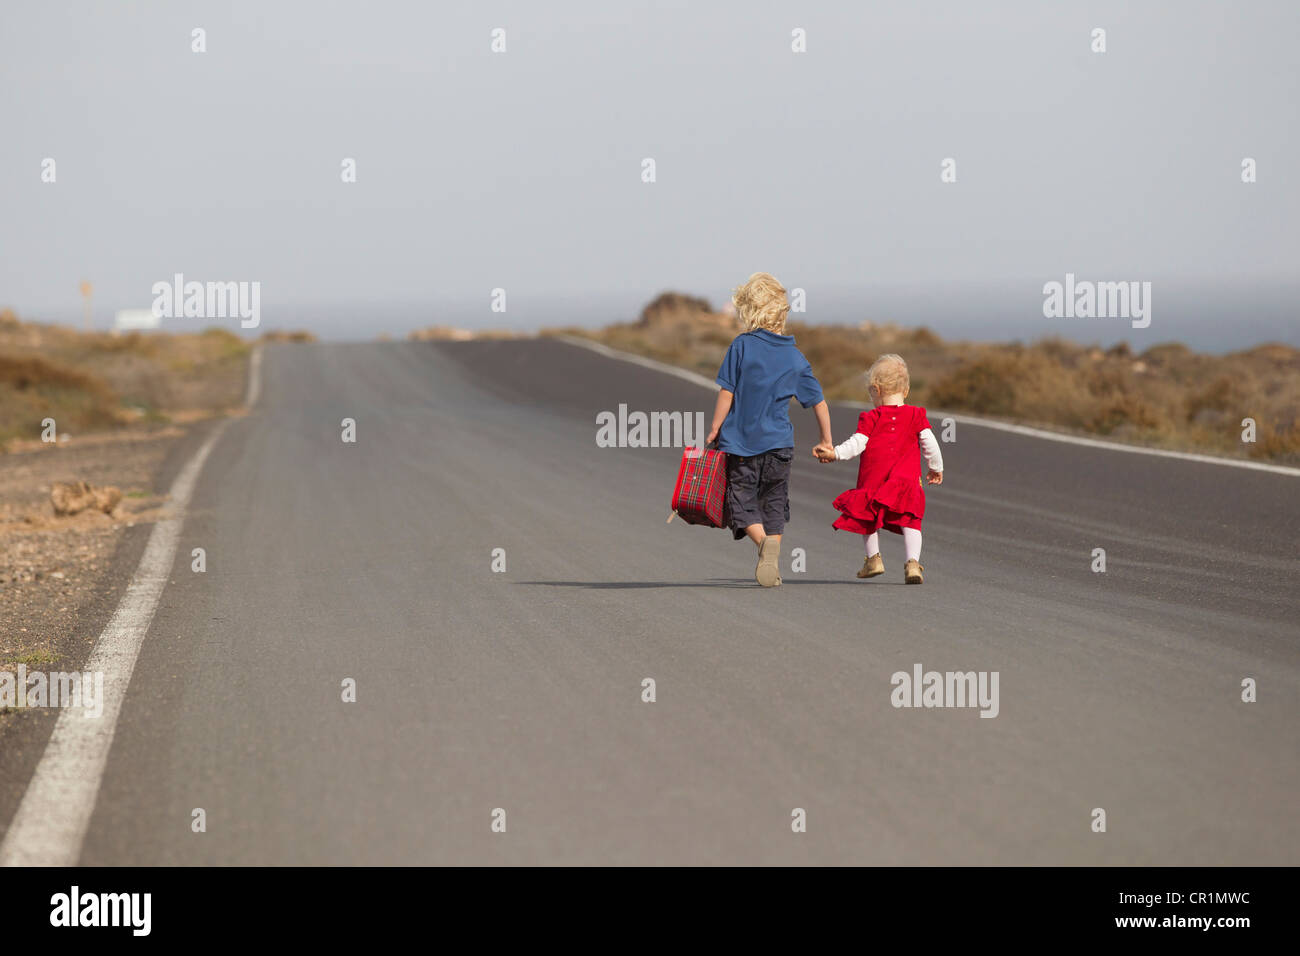 Siblings walking together on rural road - Stock Image